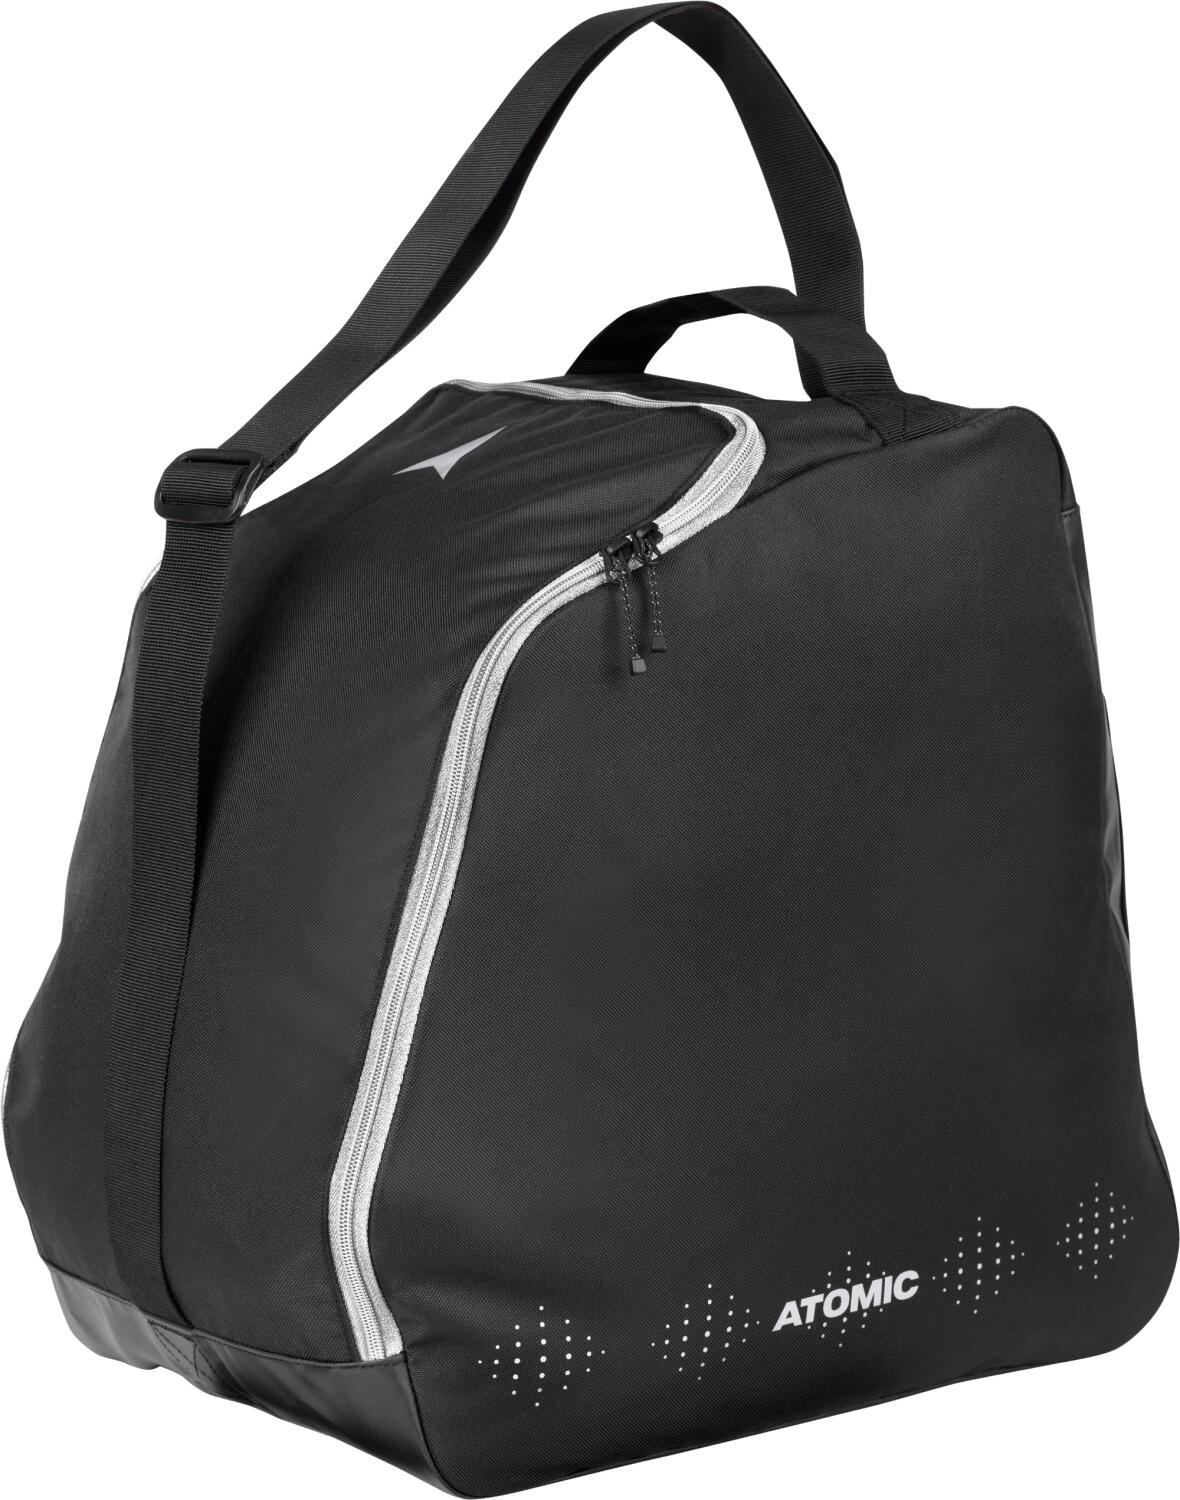 atomic-boot-bag-cloud-skischuhtasche-farbe-black-silver-